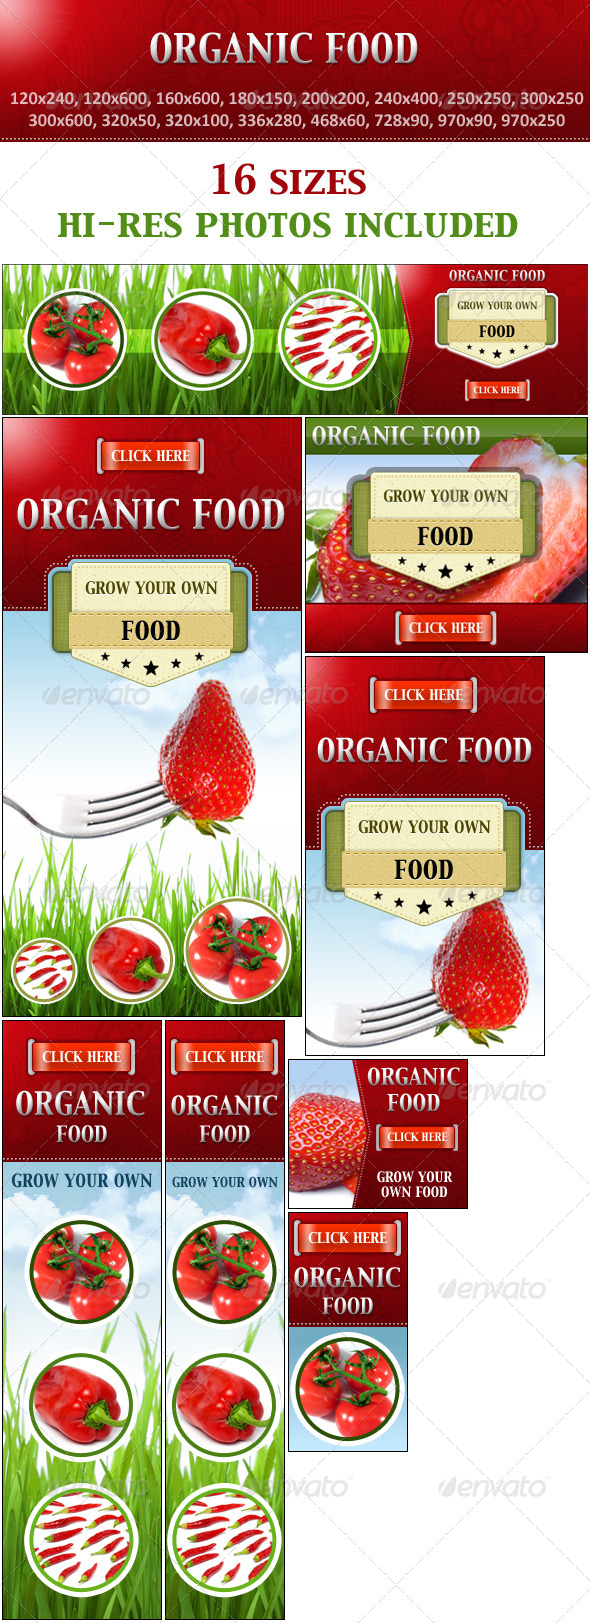 Organic Food - Grow Your Own Food - Banners & Ads Web Elements